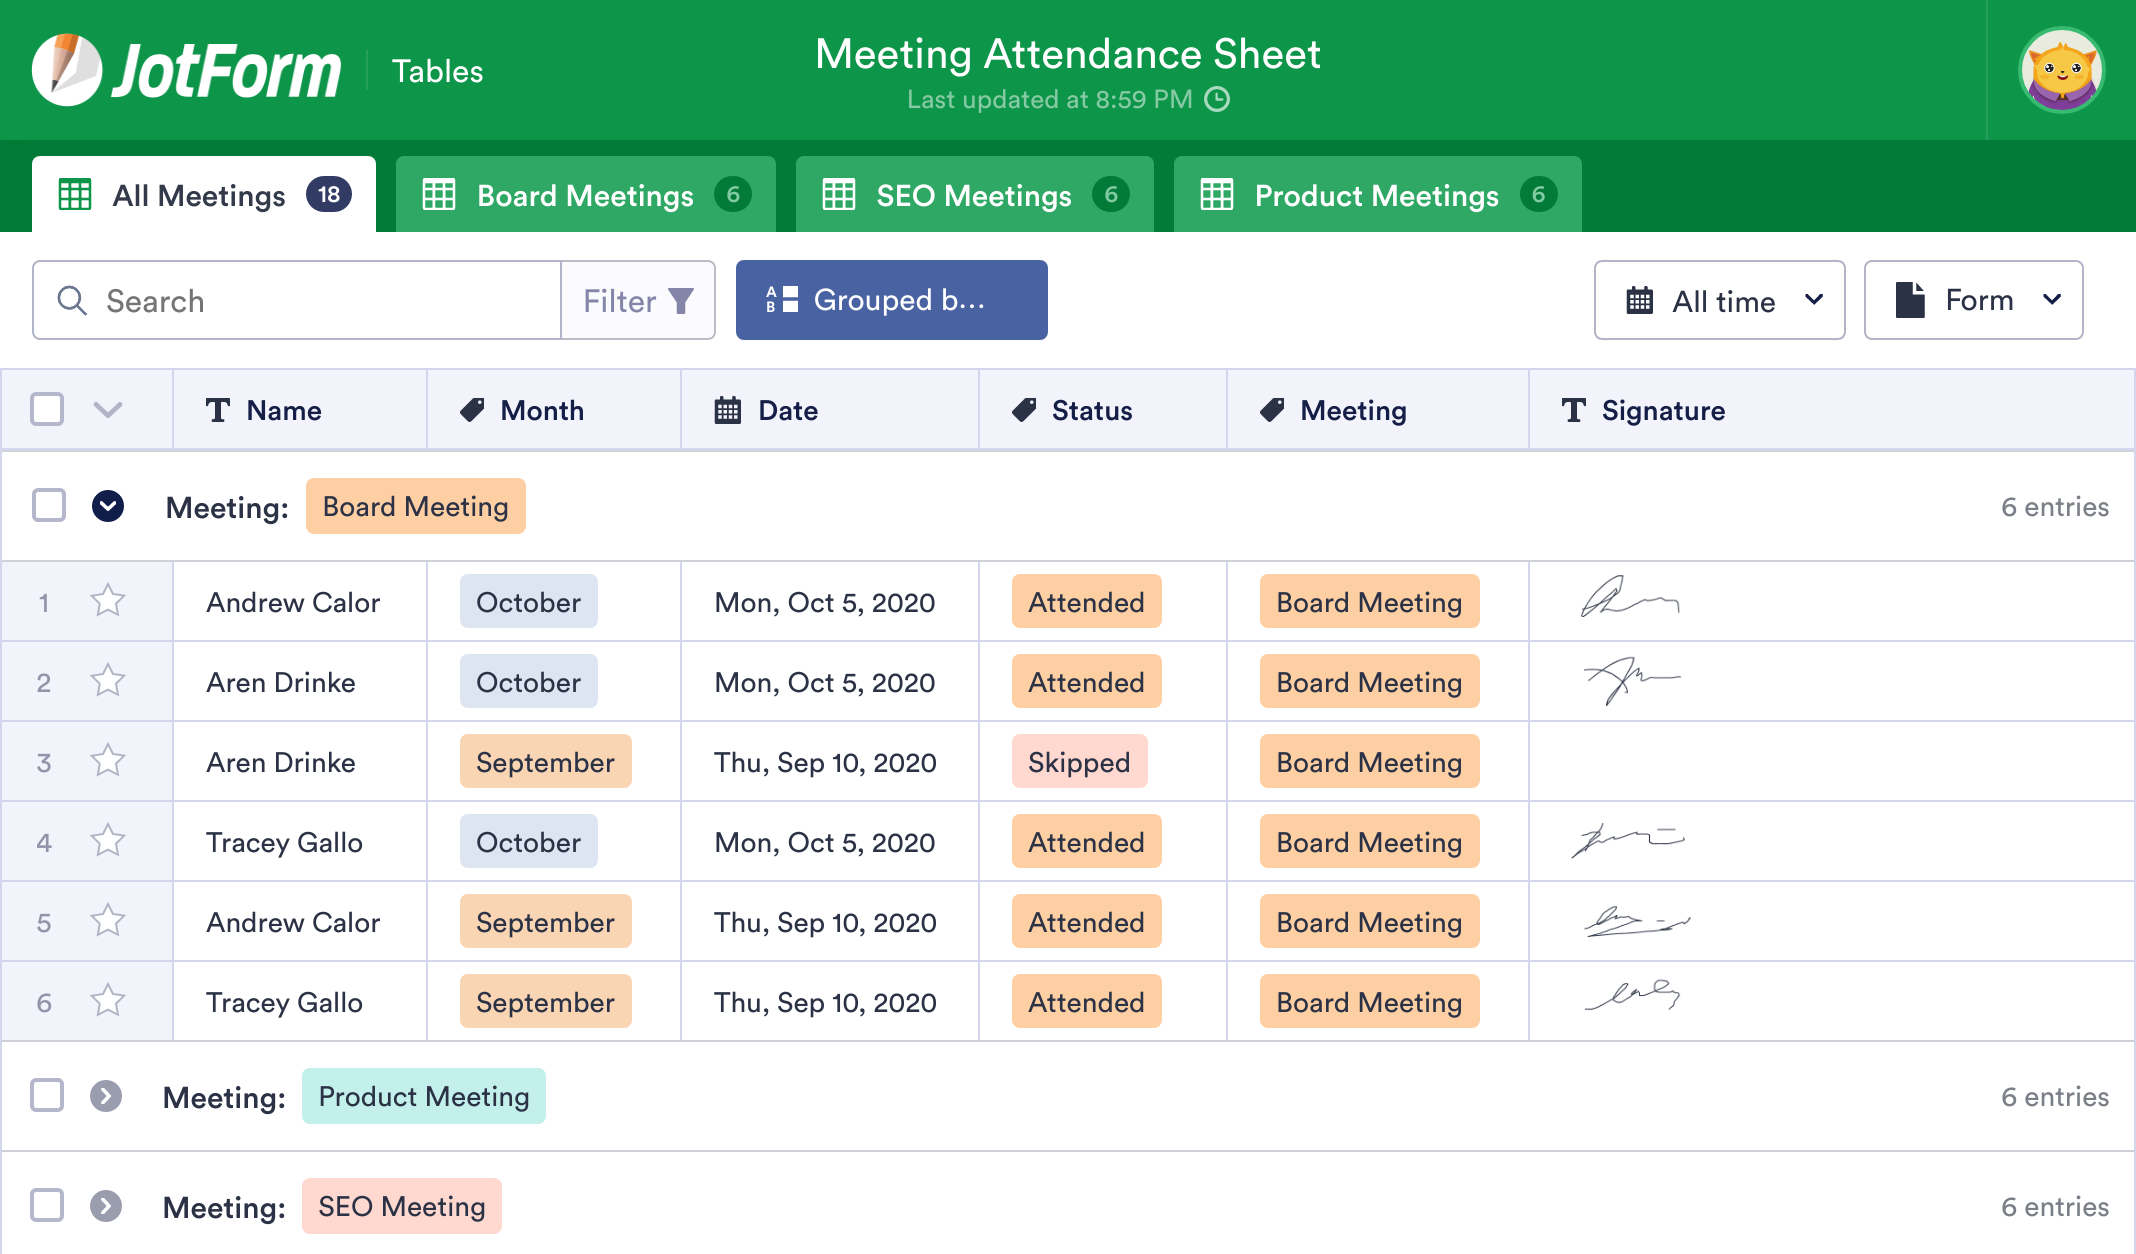 Meeting Attendance Sheet